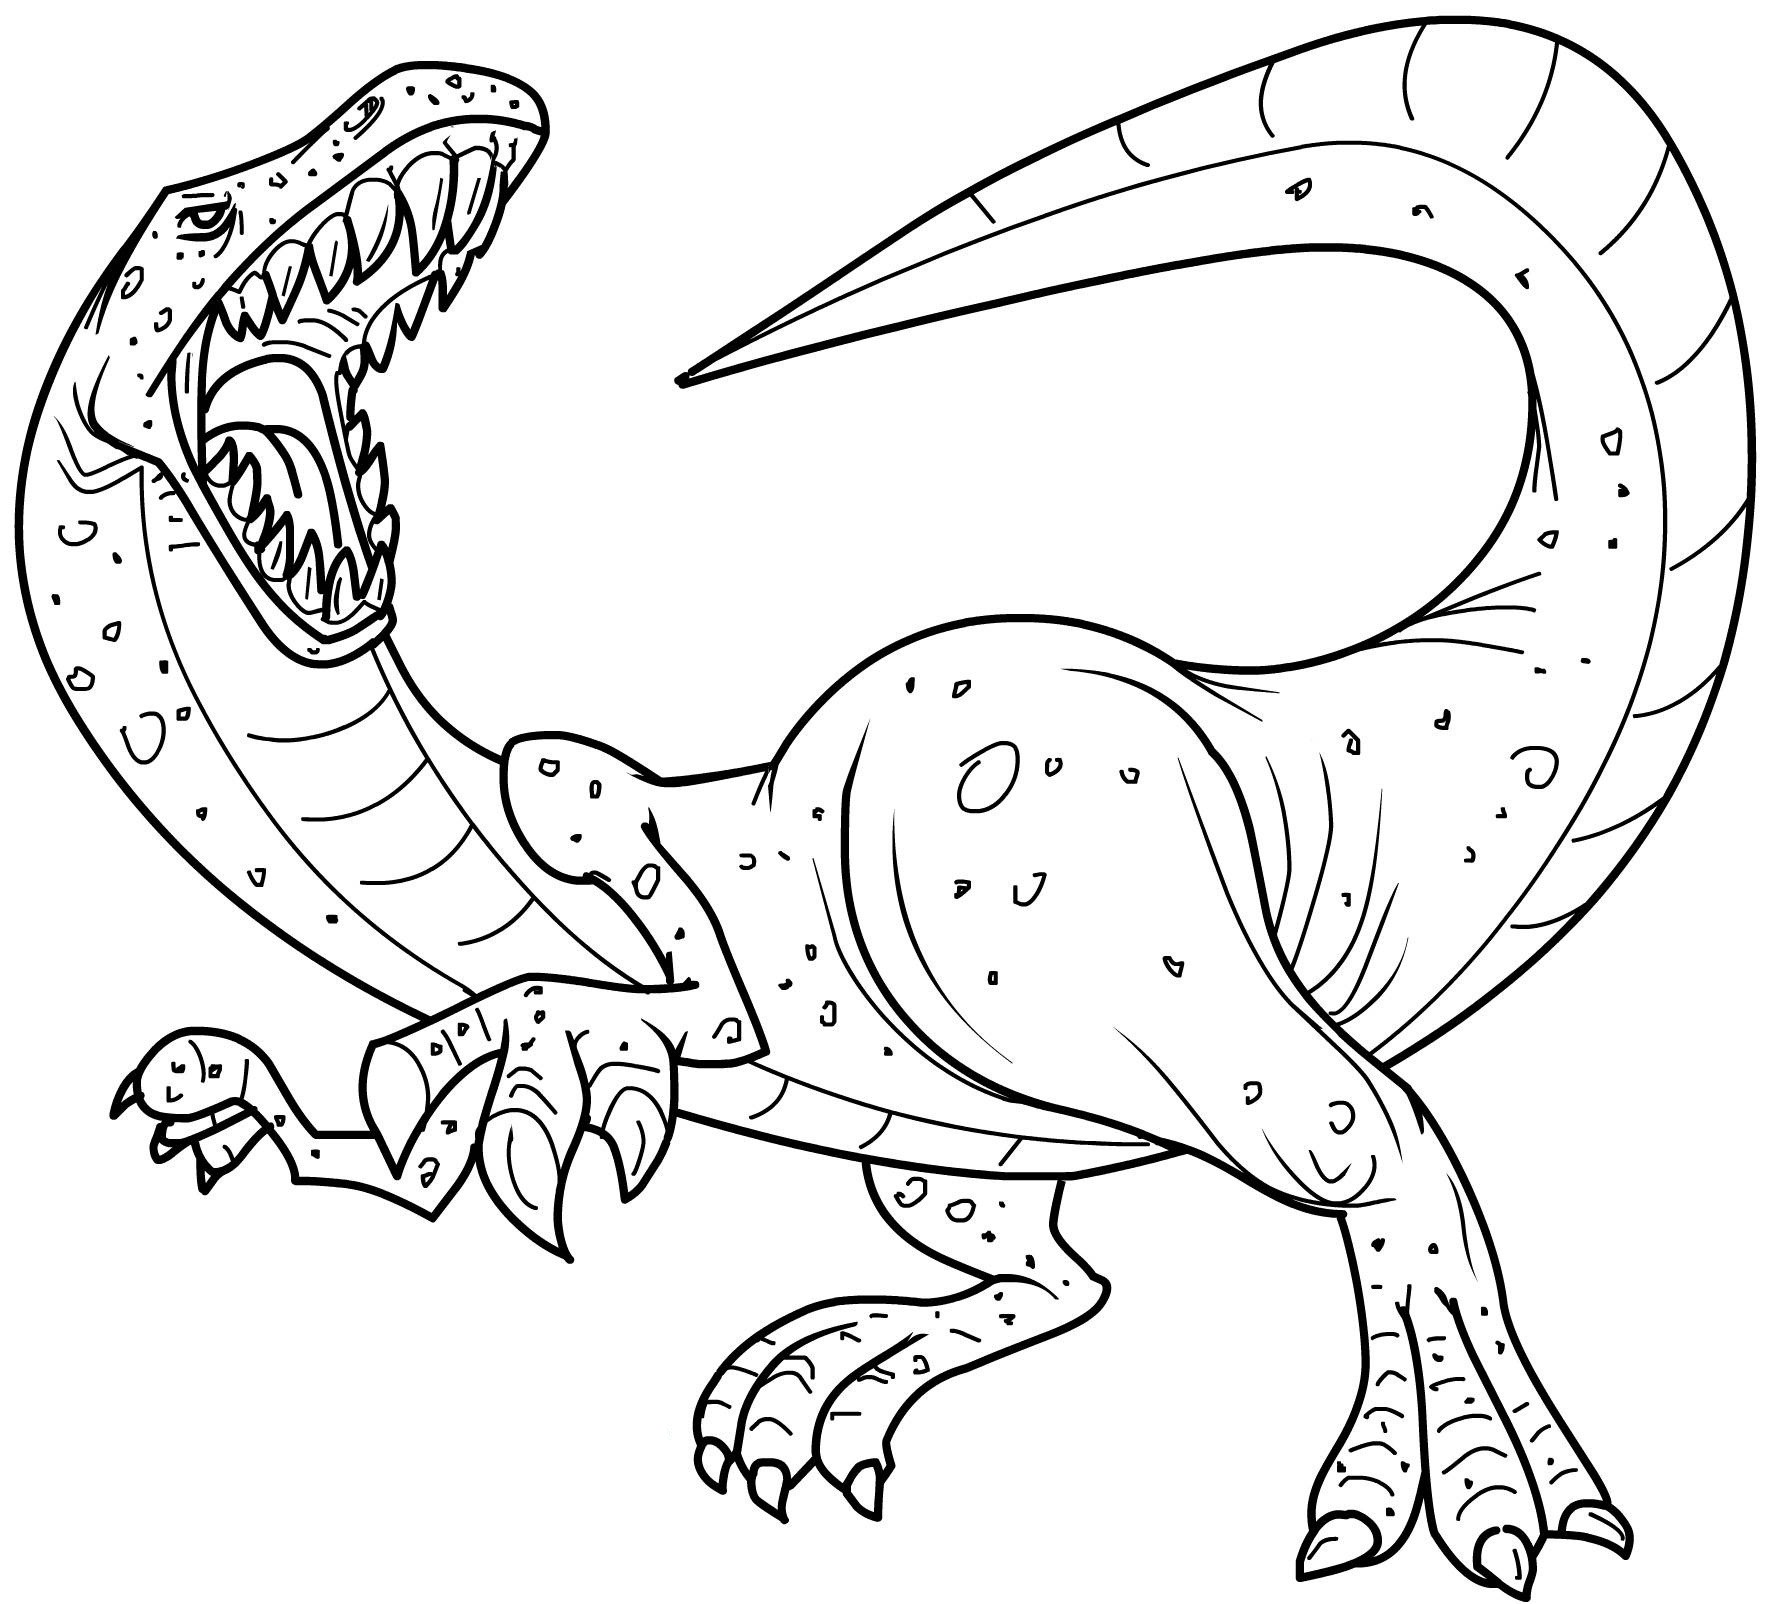 coloring page dinosaur coloring pages dinosaur free printable coloring pages dinosaur page coloring